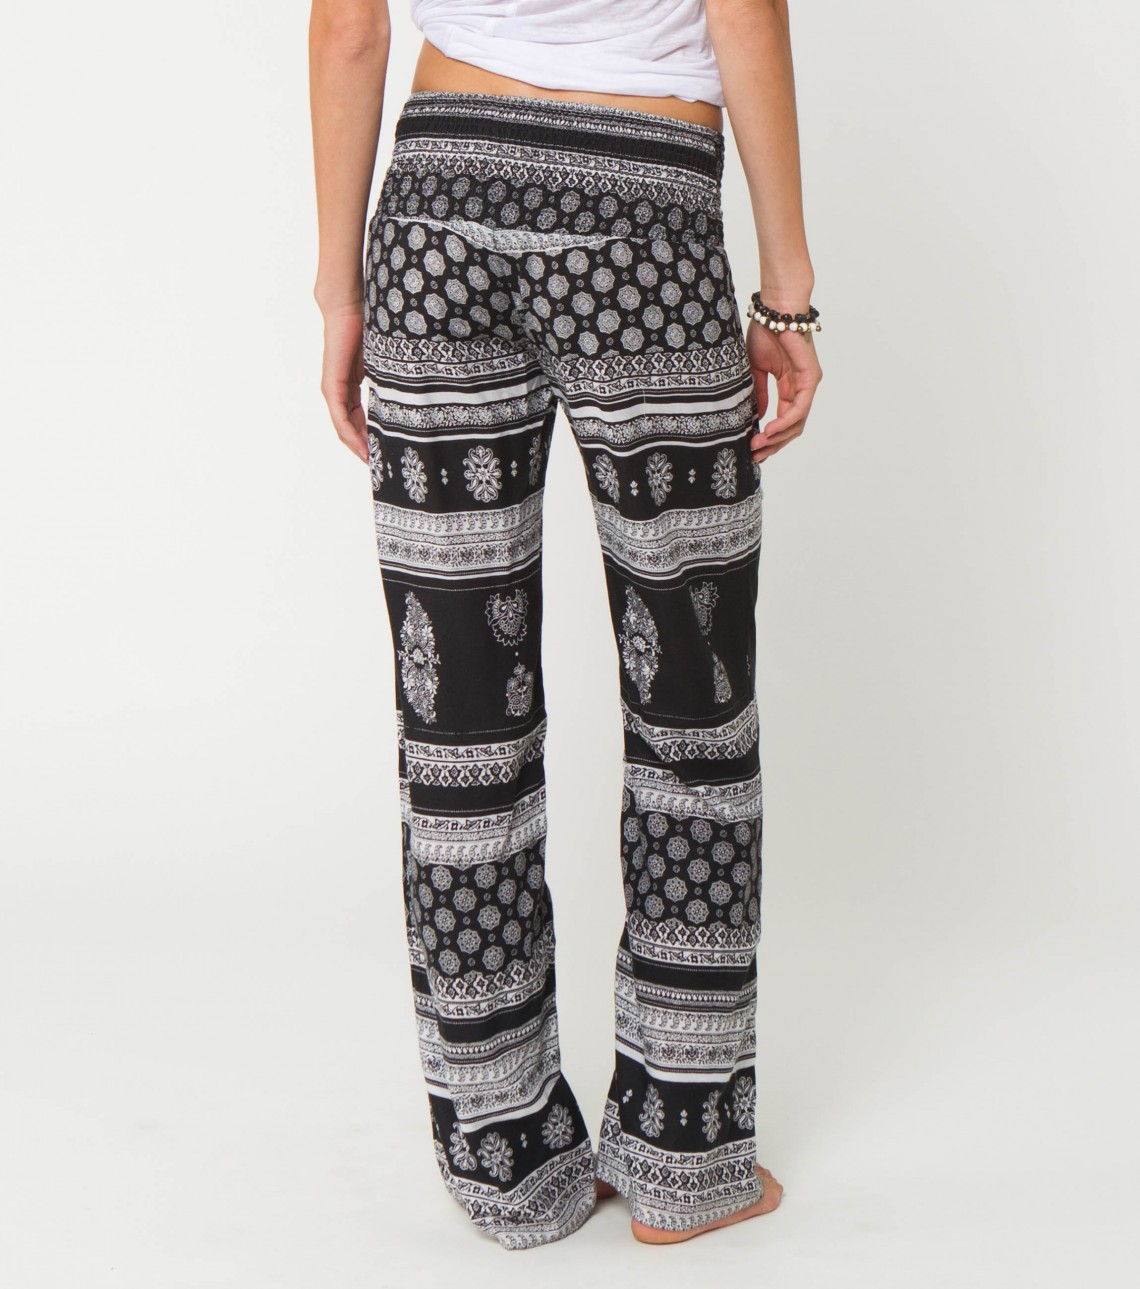 O'Neill JOHNSON PANTS from Official US O'Neill Store